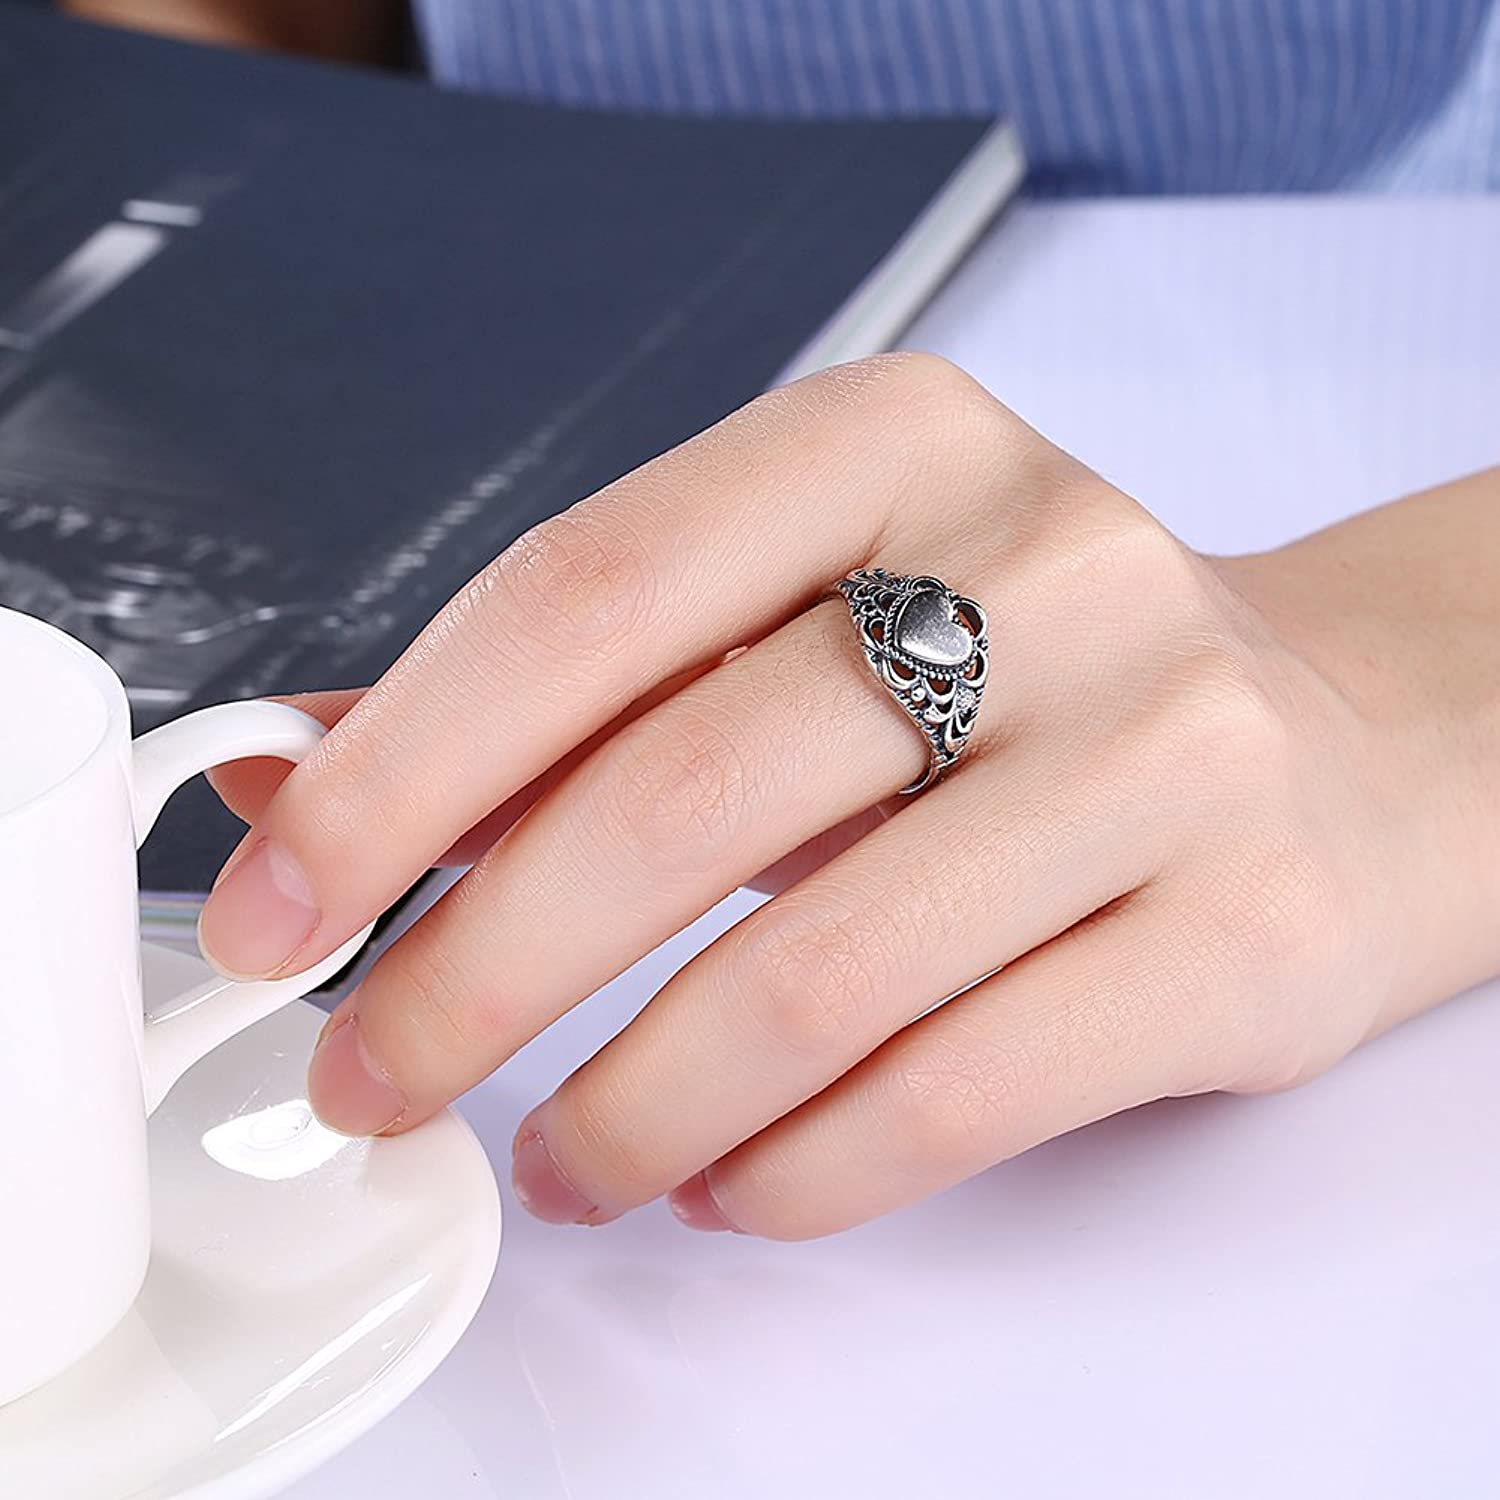 Amazon.com: Retro Minimalist Personality Heart-Shaped Ring Skeleton ...